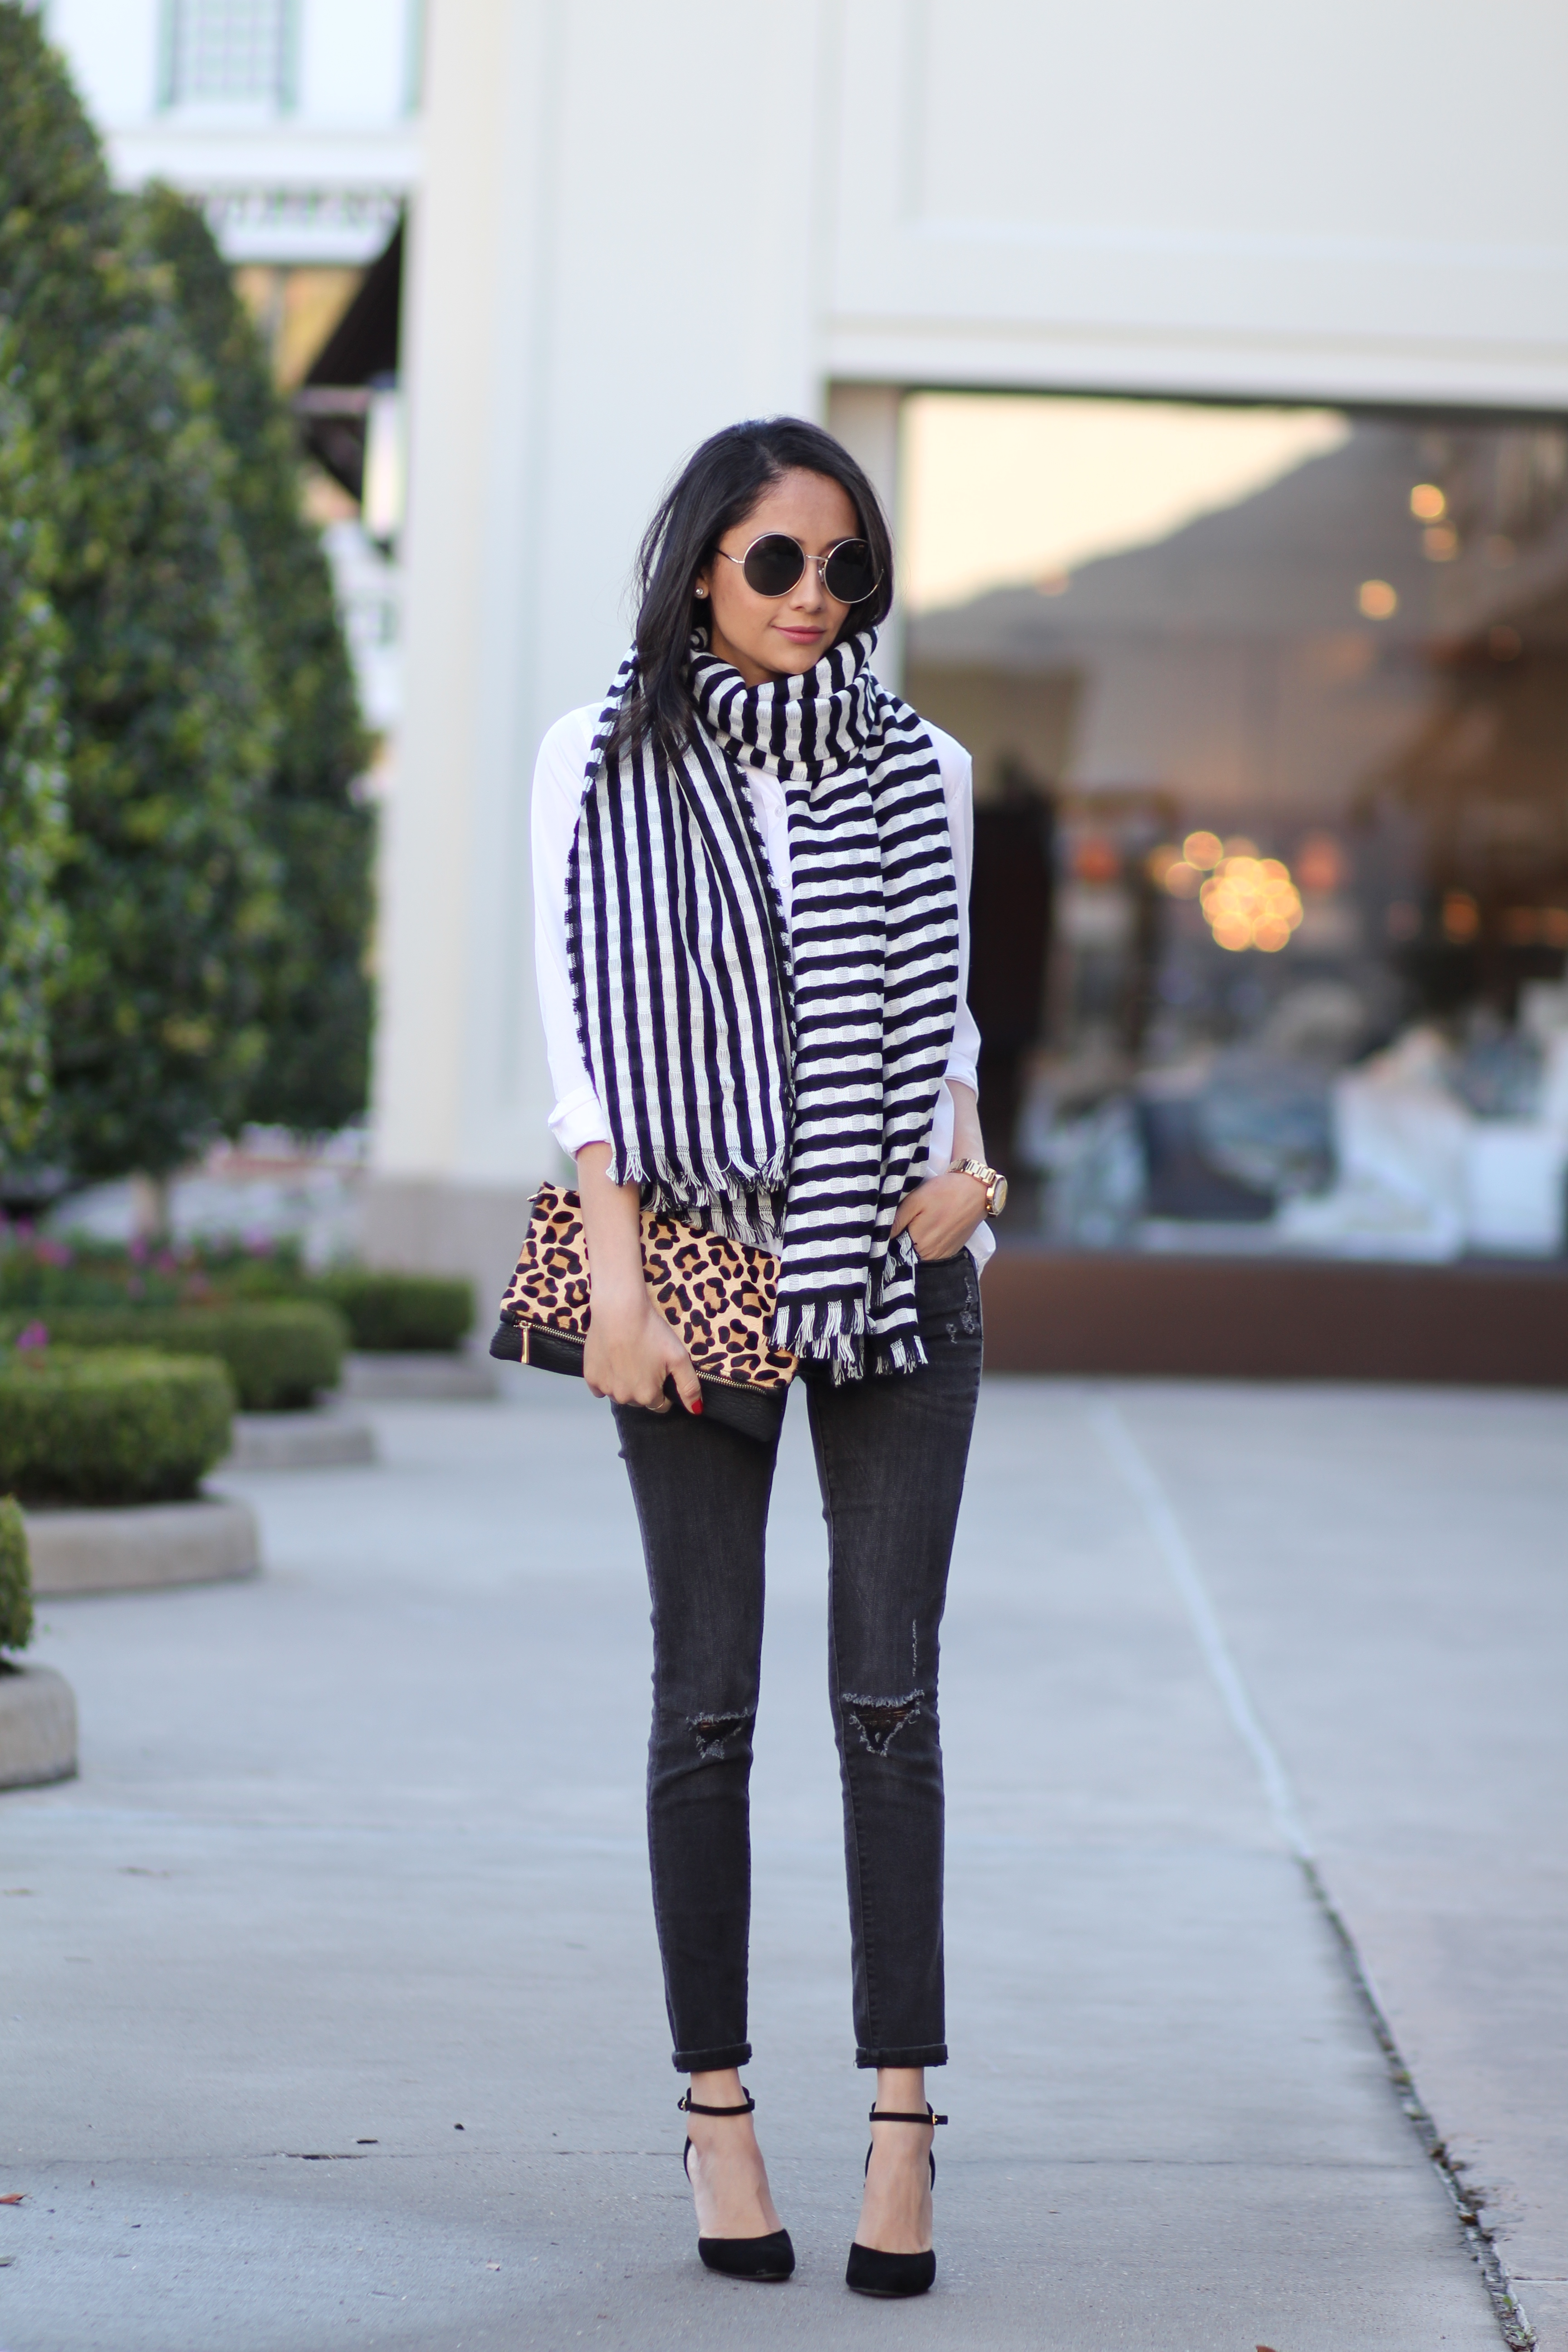 Lifestyle blogger Lilly Beltran of Daily Craving wearing a chic fall outfit with a striped scarf and leopard print clutch